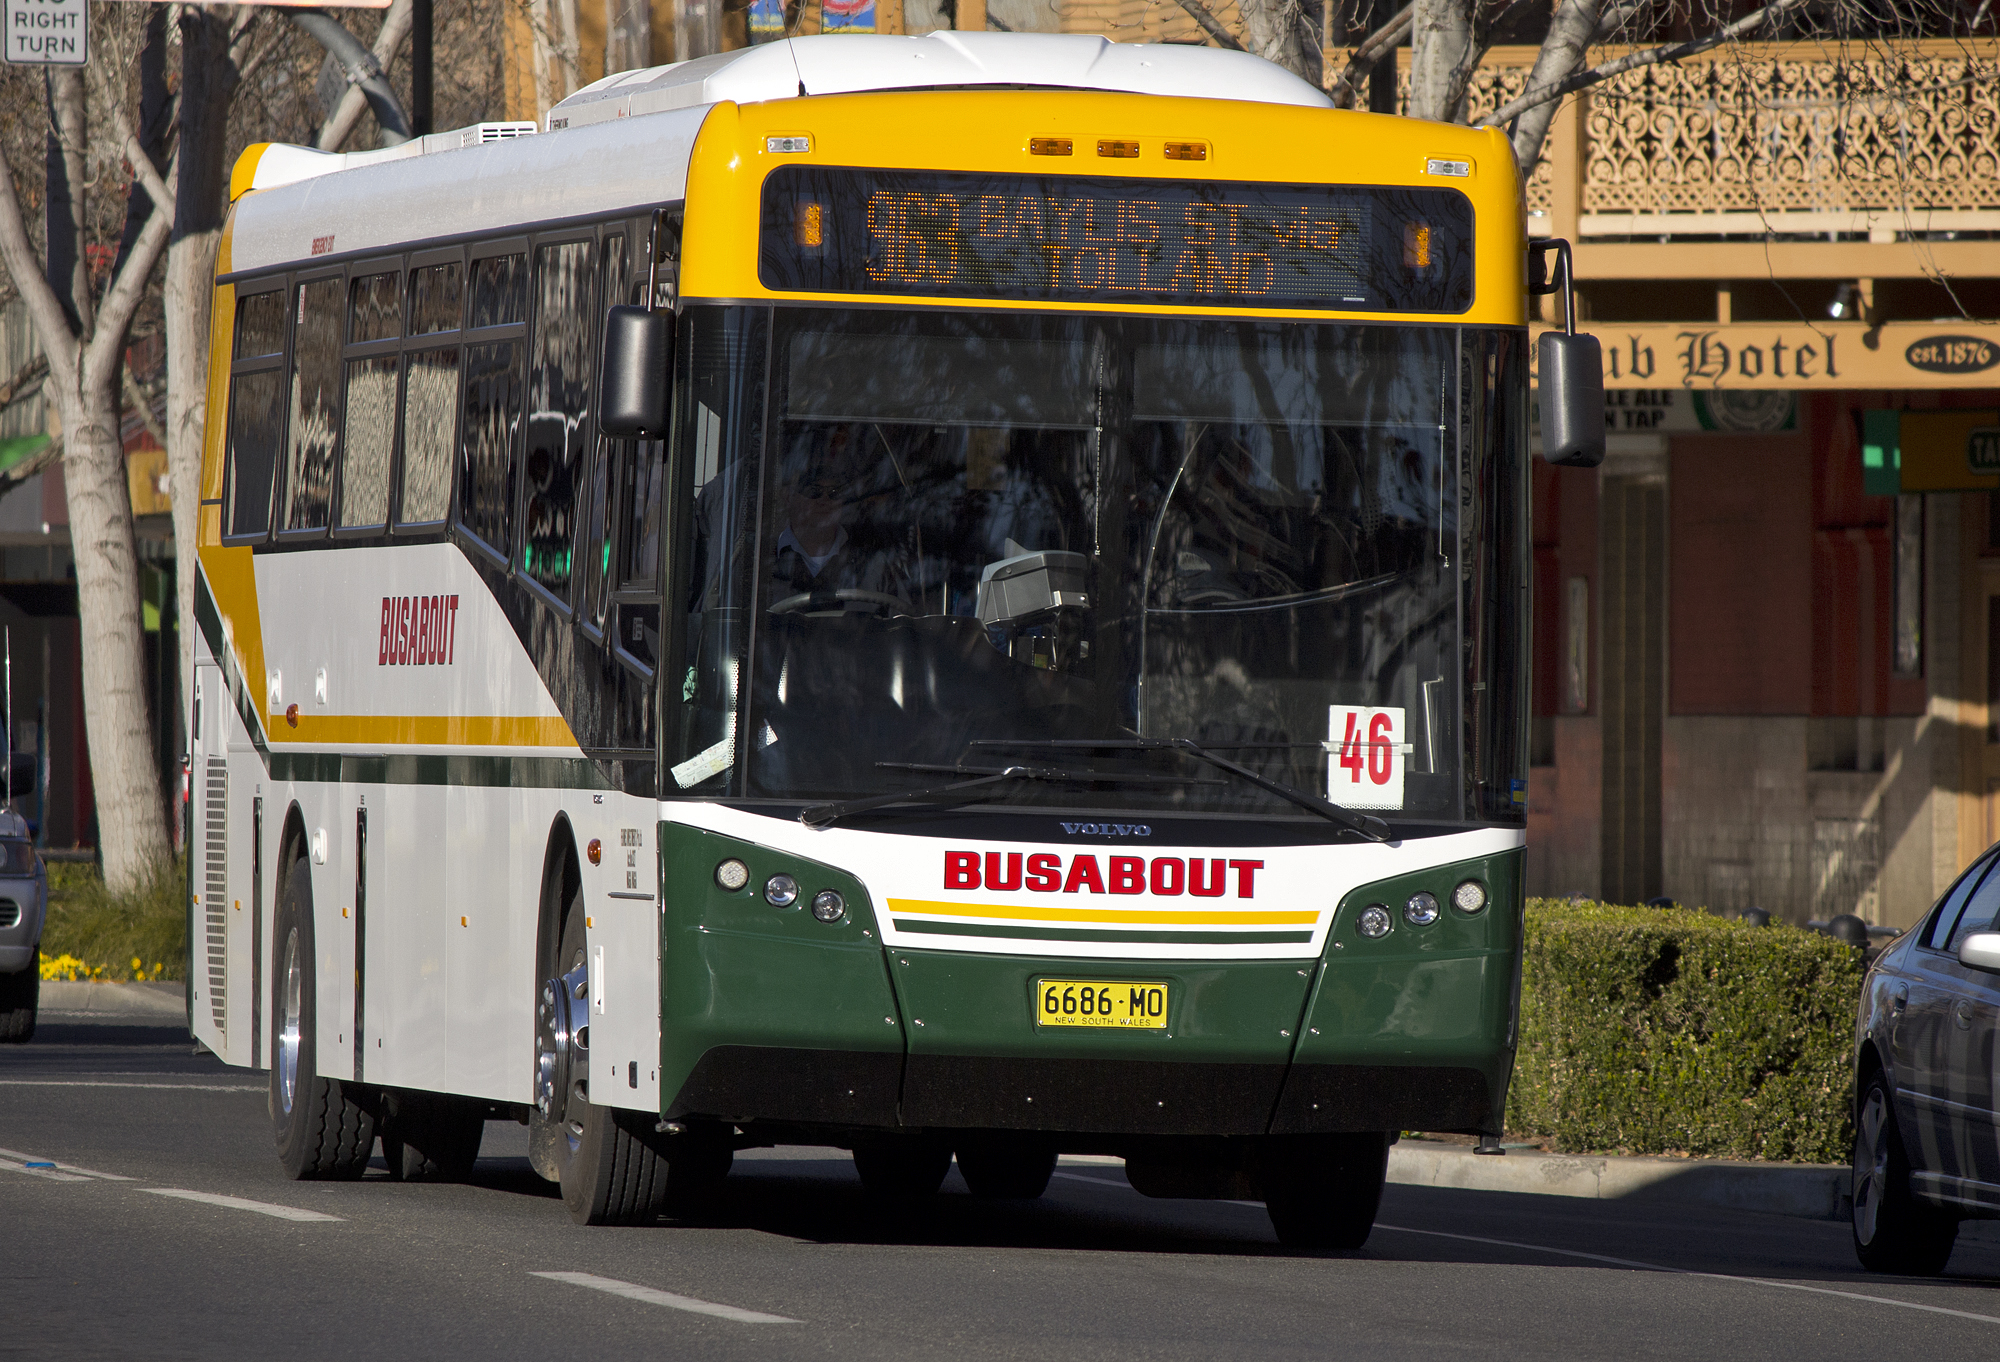 File:Busabout Wagga - Bustech 'SBV' bodied Volvo B7R (6686 ...